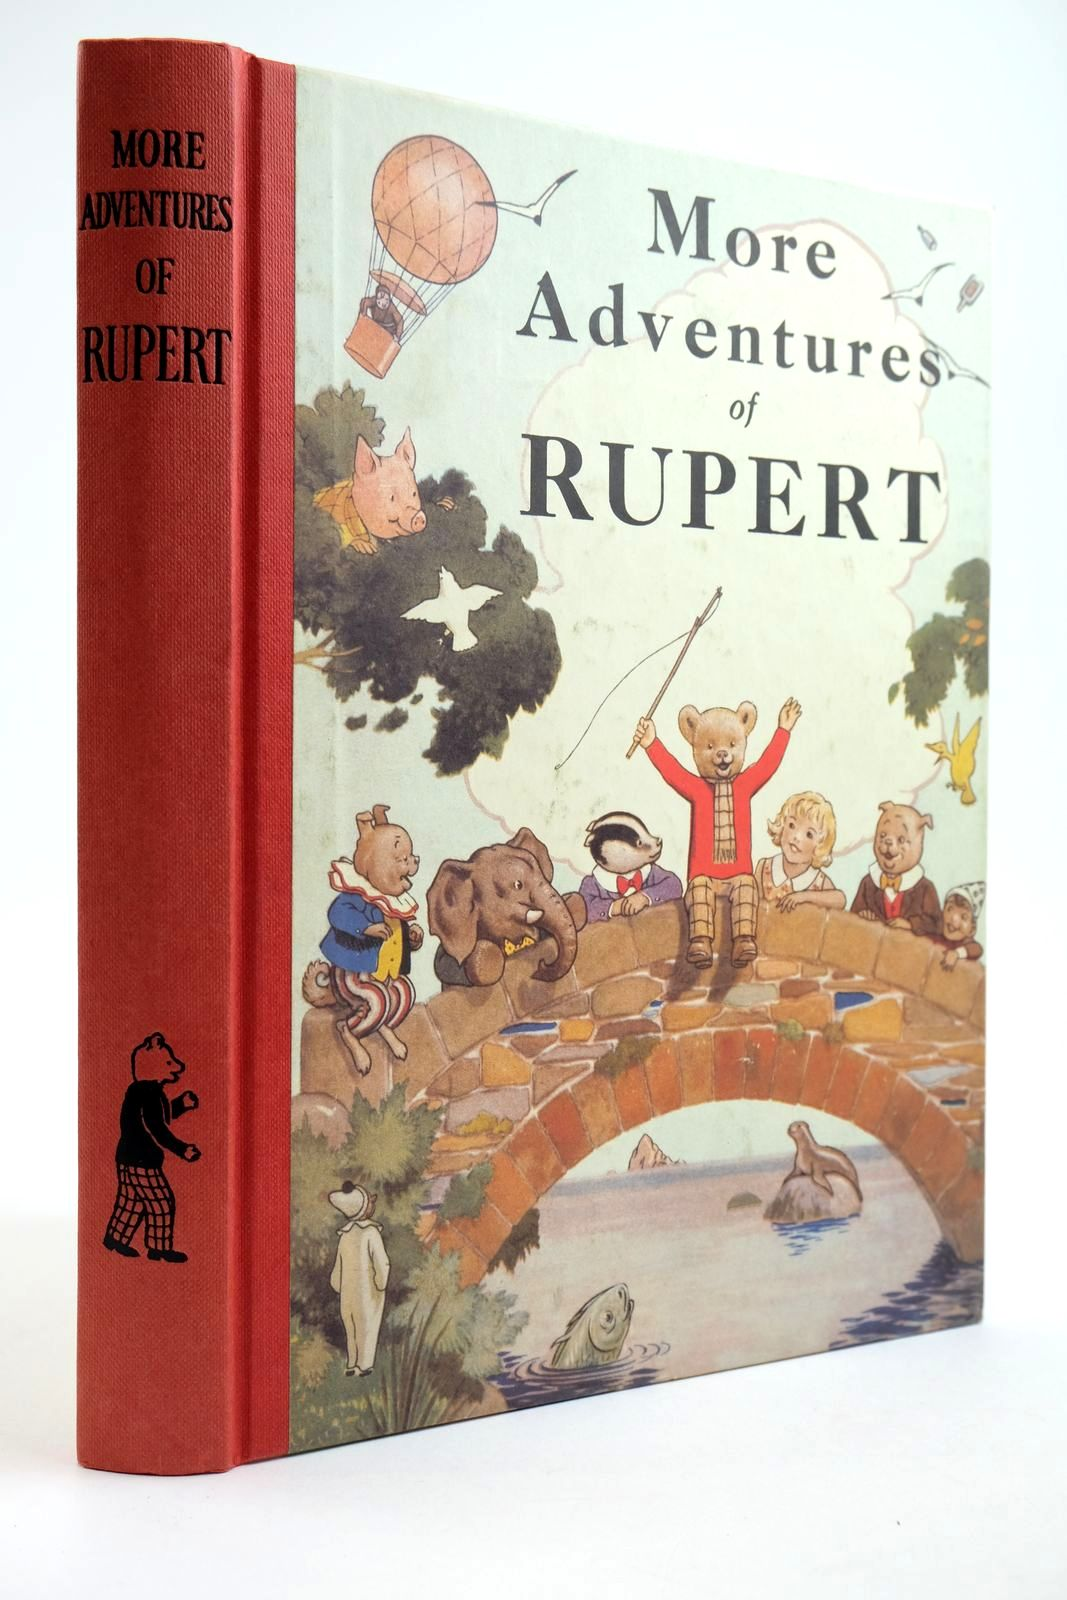 Photo of RUPERT ANNUAL 1937 (FACSIMILE) - MORE ADVENTURES OF RUPERT written by Bestall, Alfred illustrated by Bestall, Alfred published by Express Newspapers Ltd. (STOCK CODE: 2133910)  for sale by Stella & Rose's Books